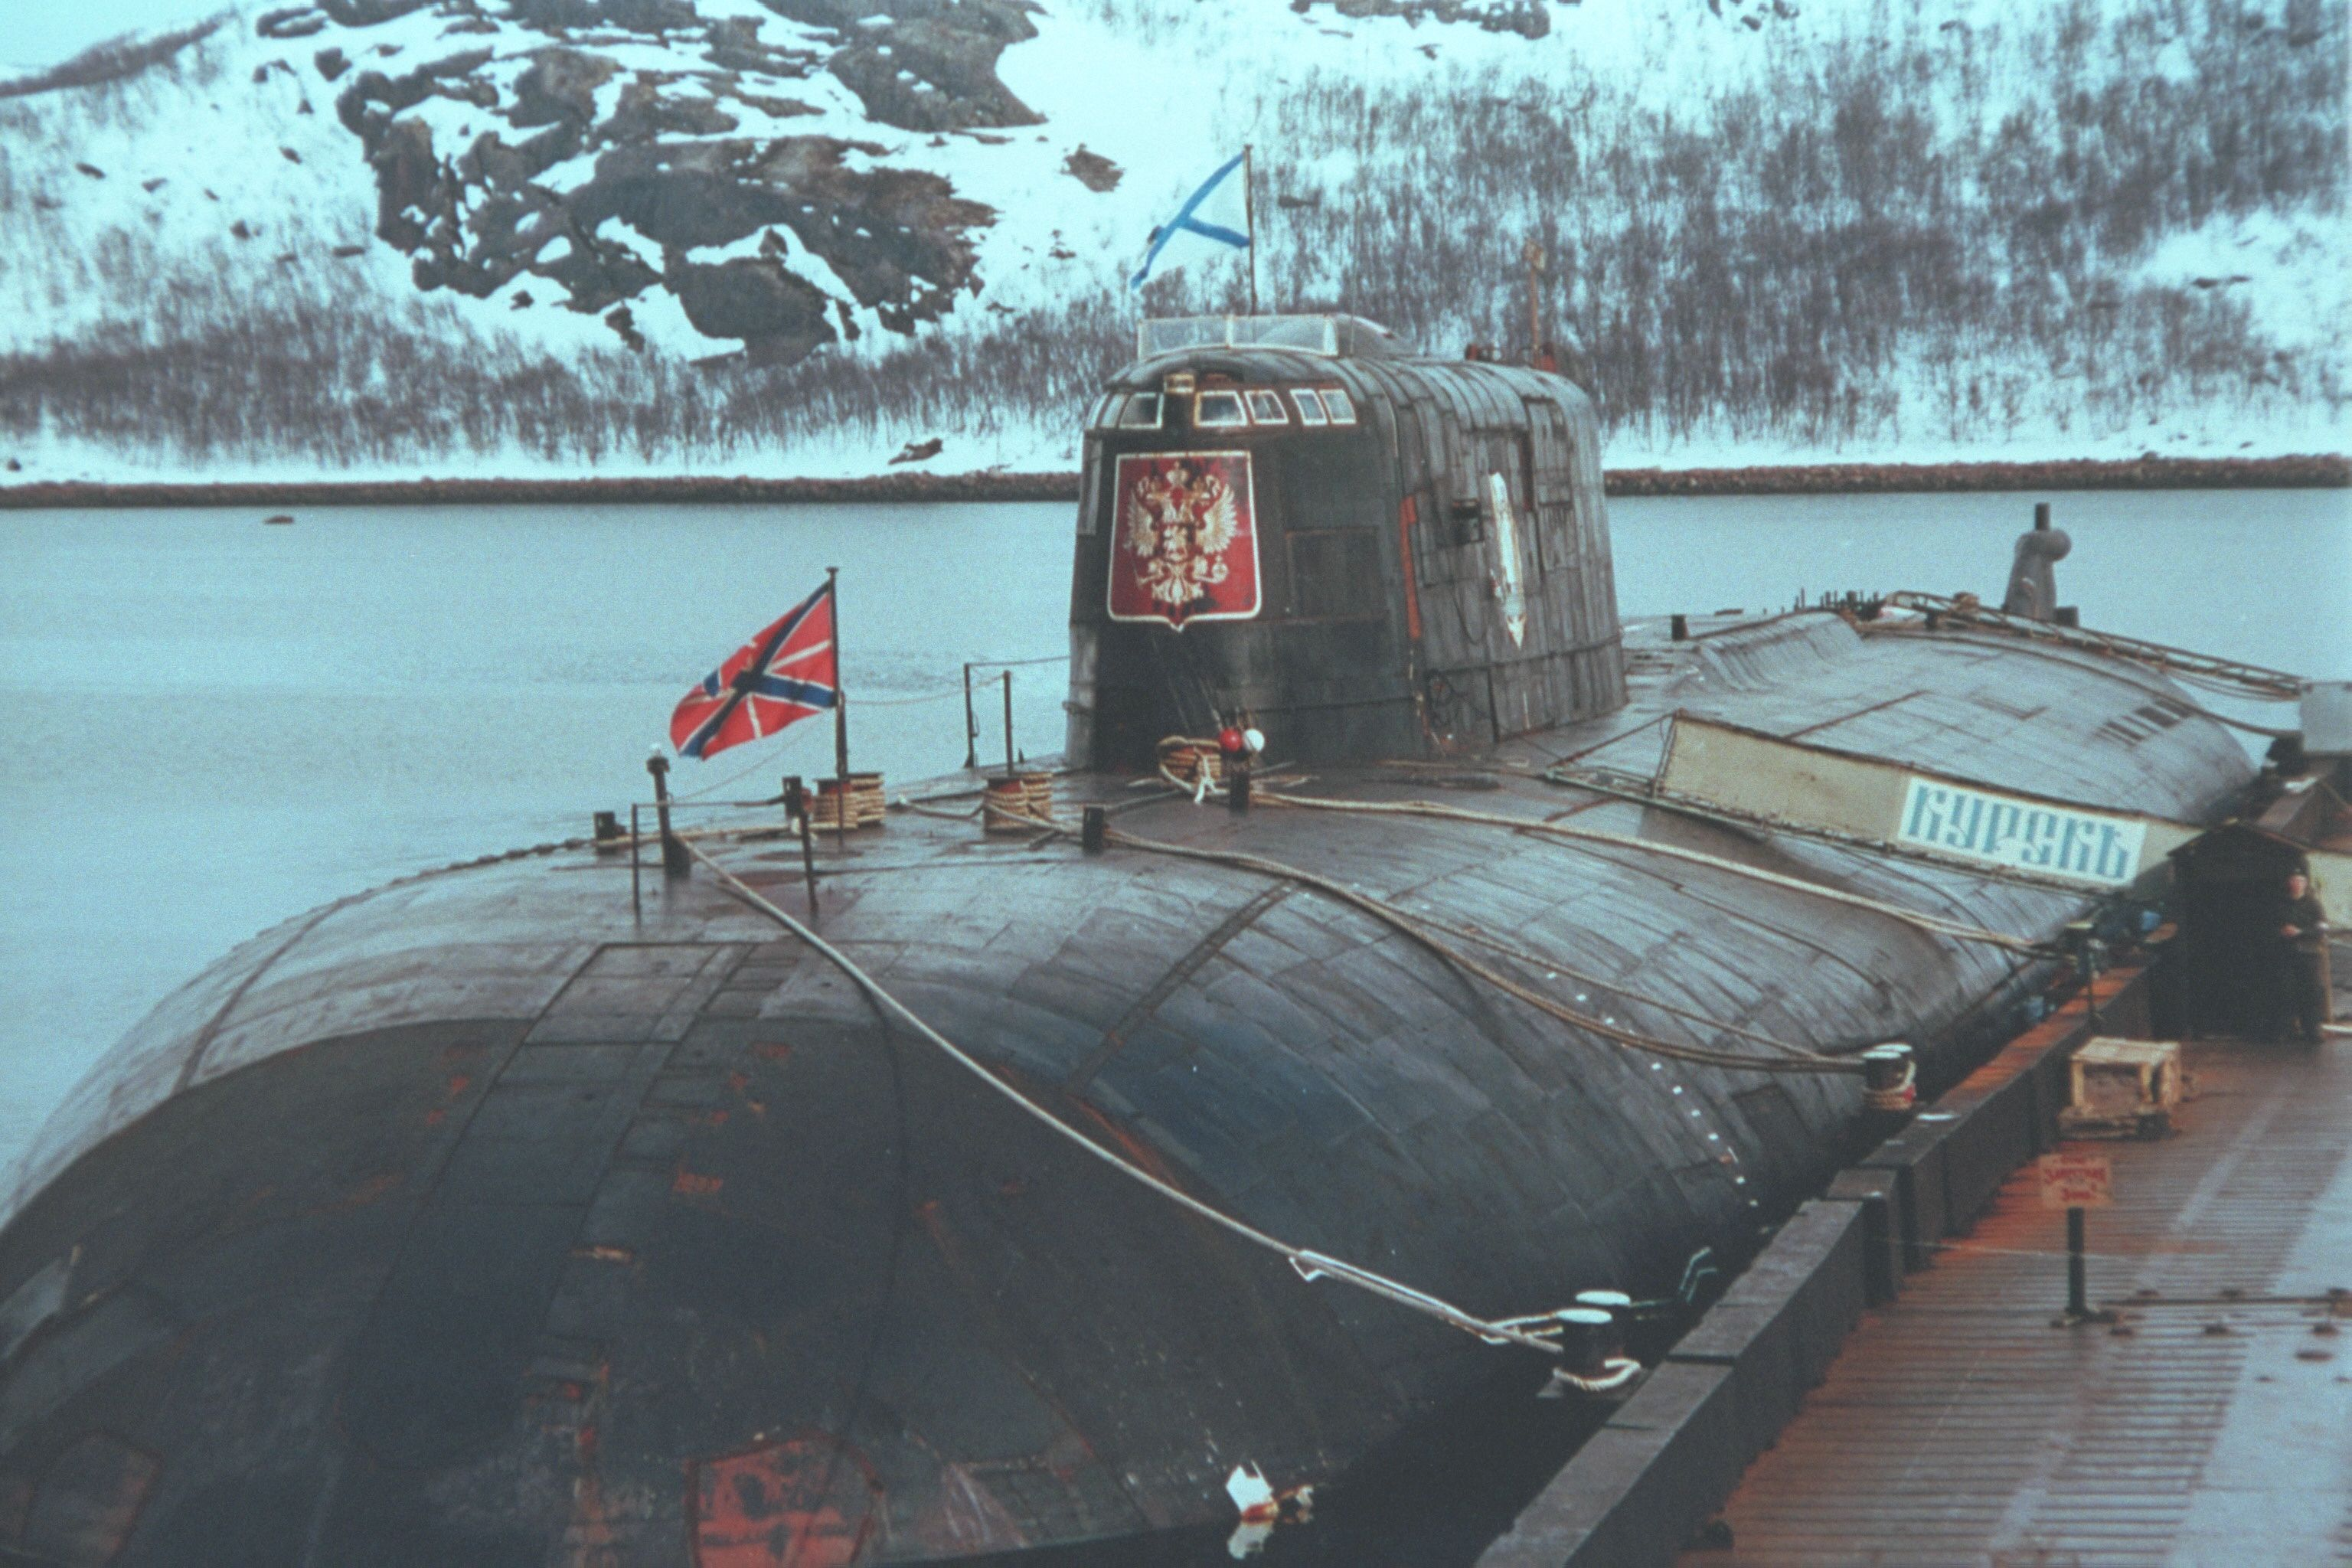 Russian Submarine Accident - The True Story of the Kursk Submarine